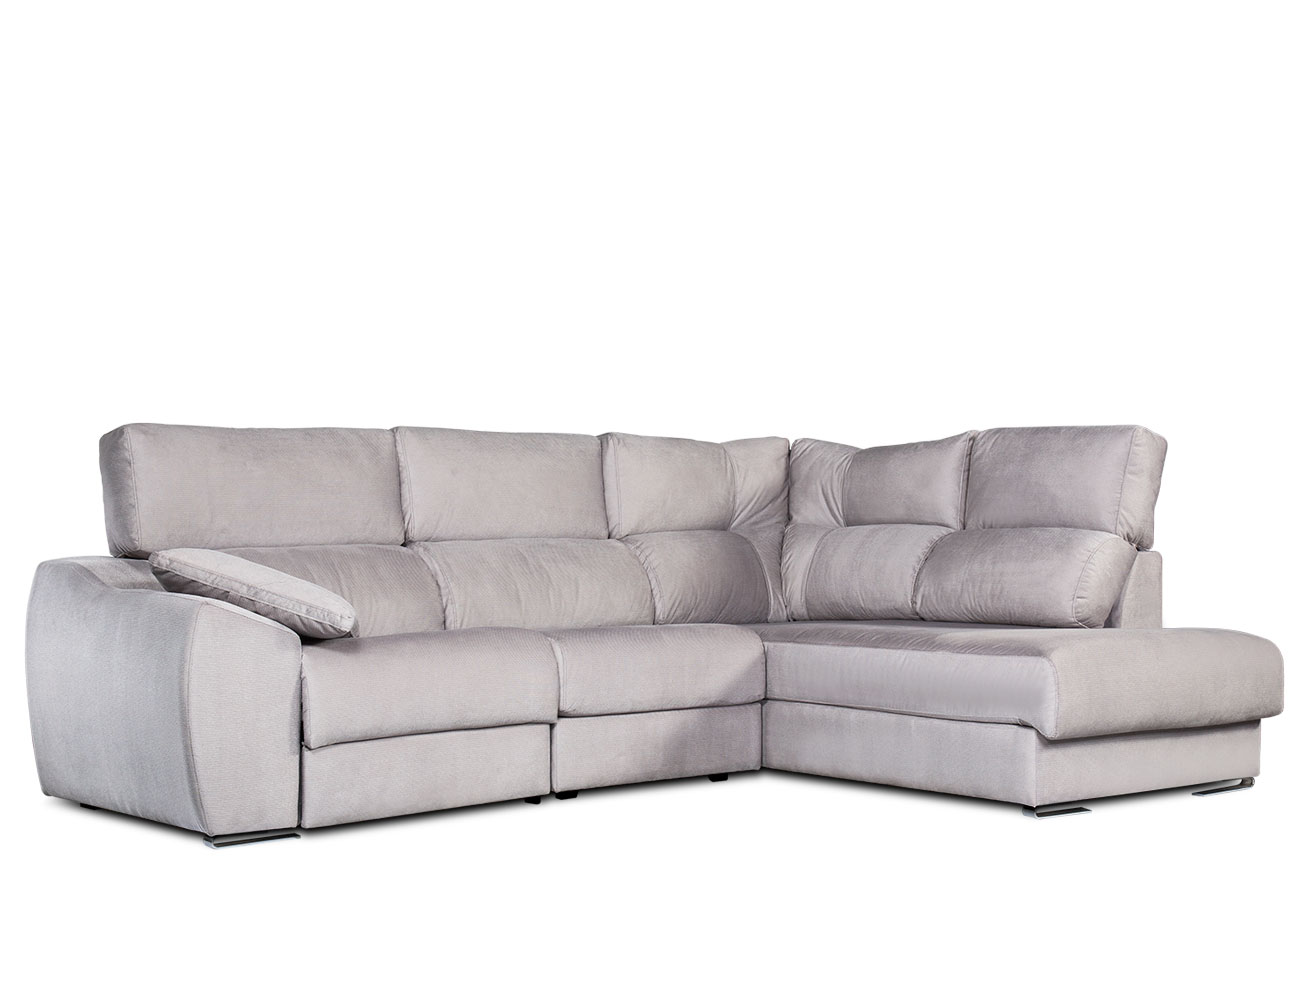 Sofa chaiselongue rincon electrico8